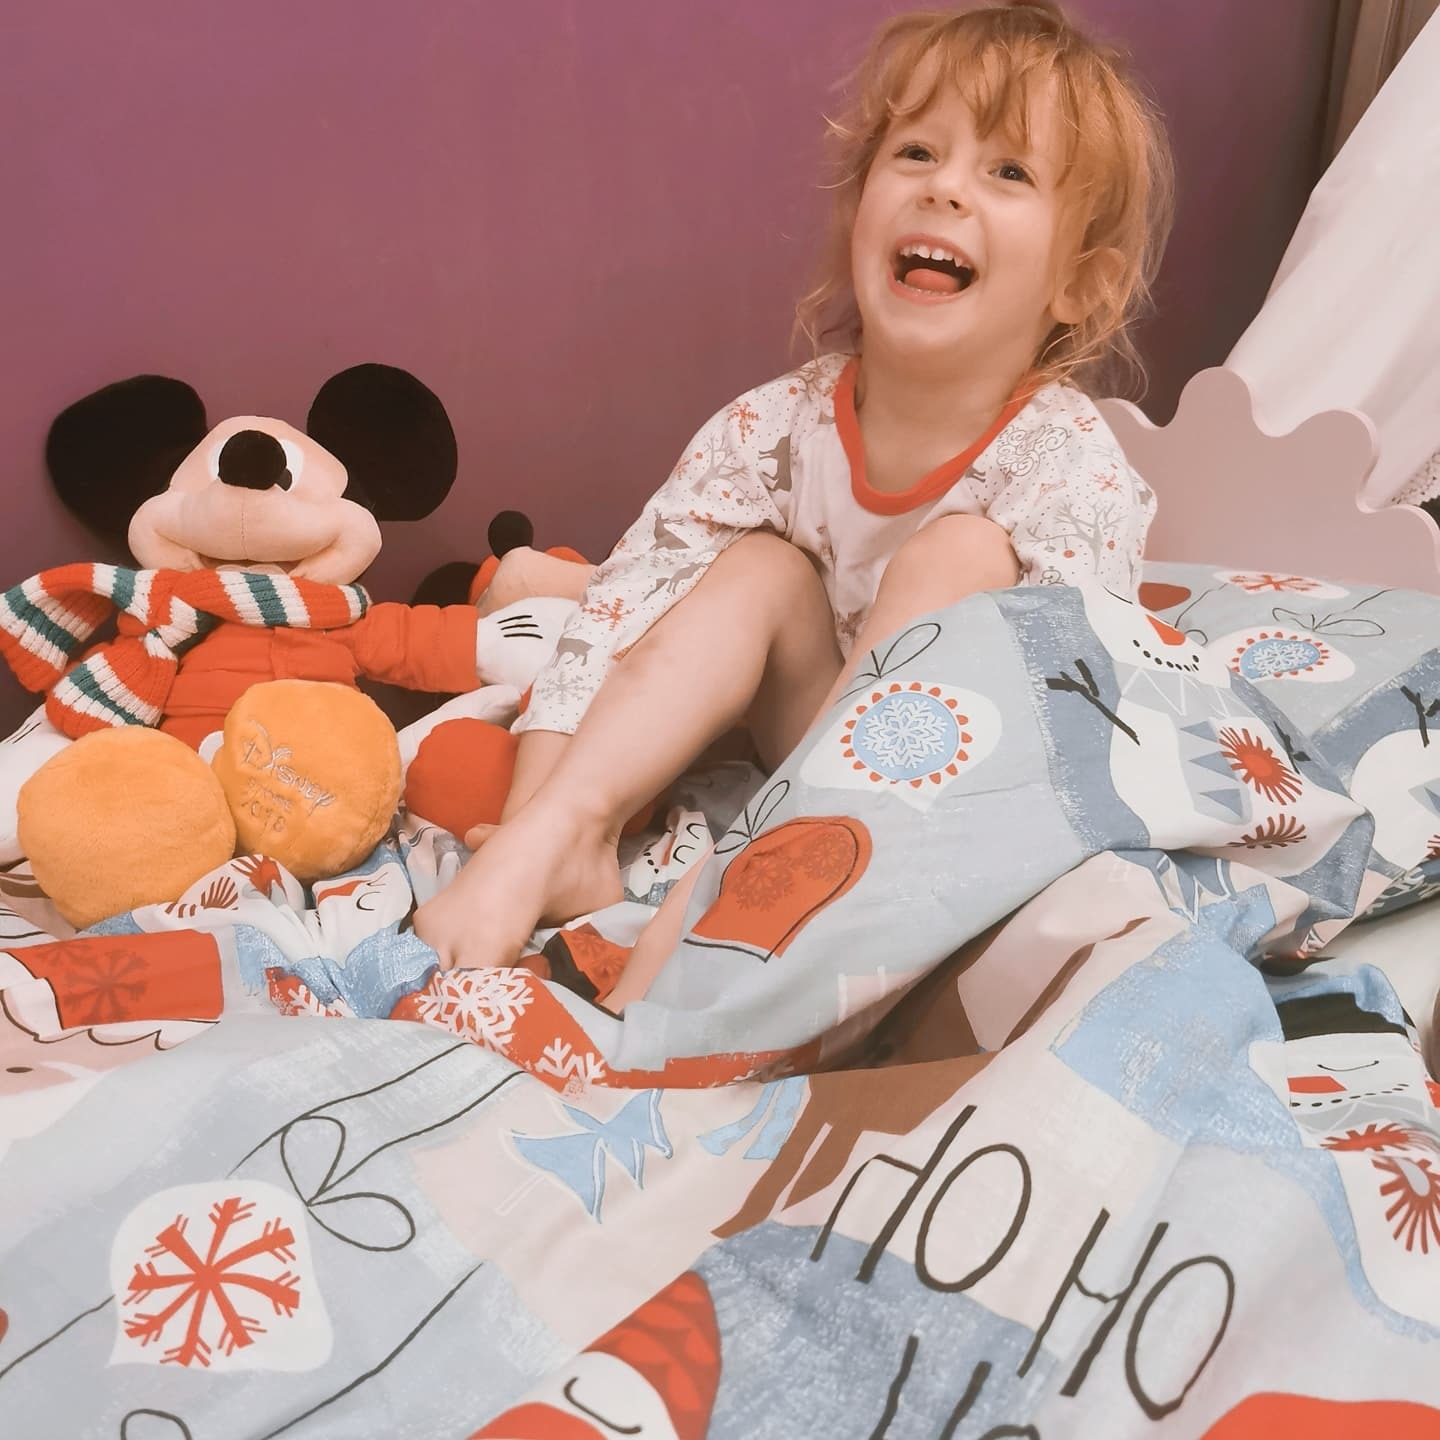 A child lying on a bed in Santa Christmas bedding with stuffed animals.